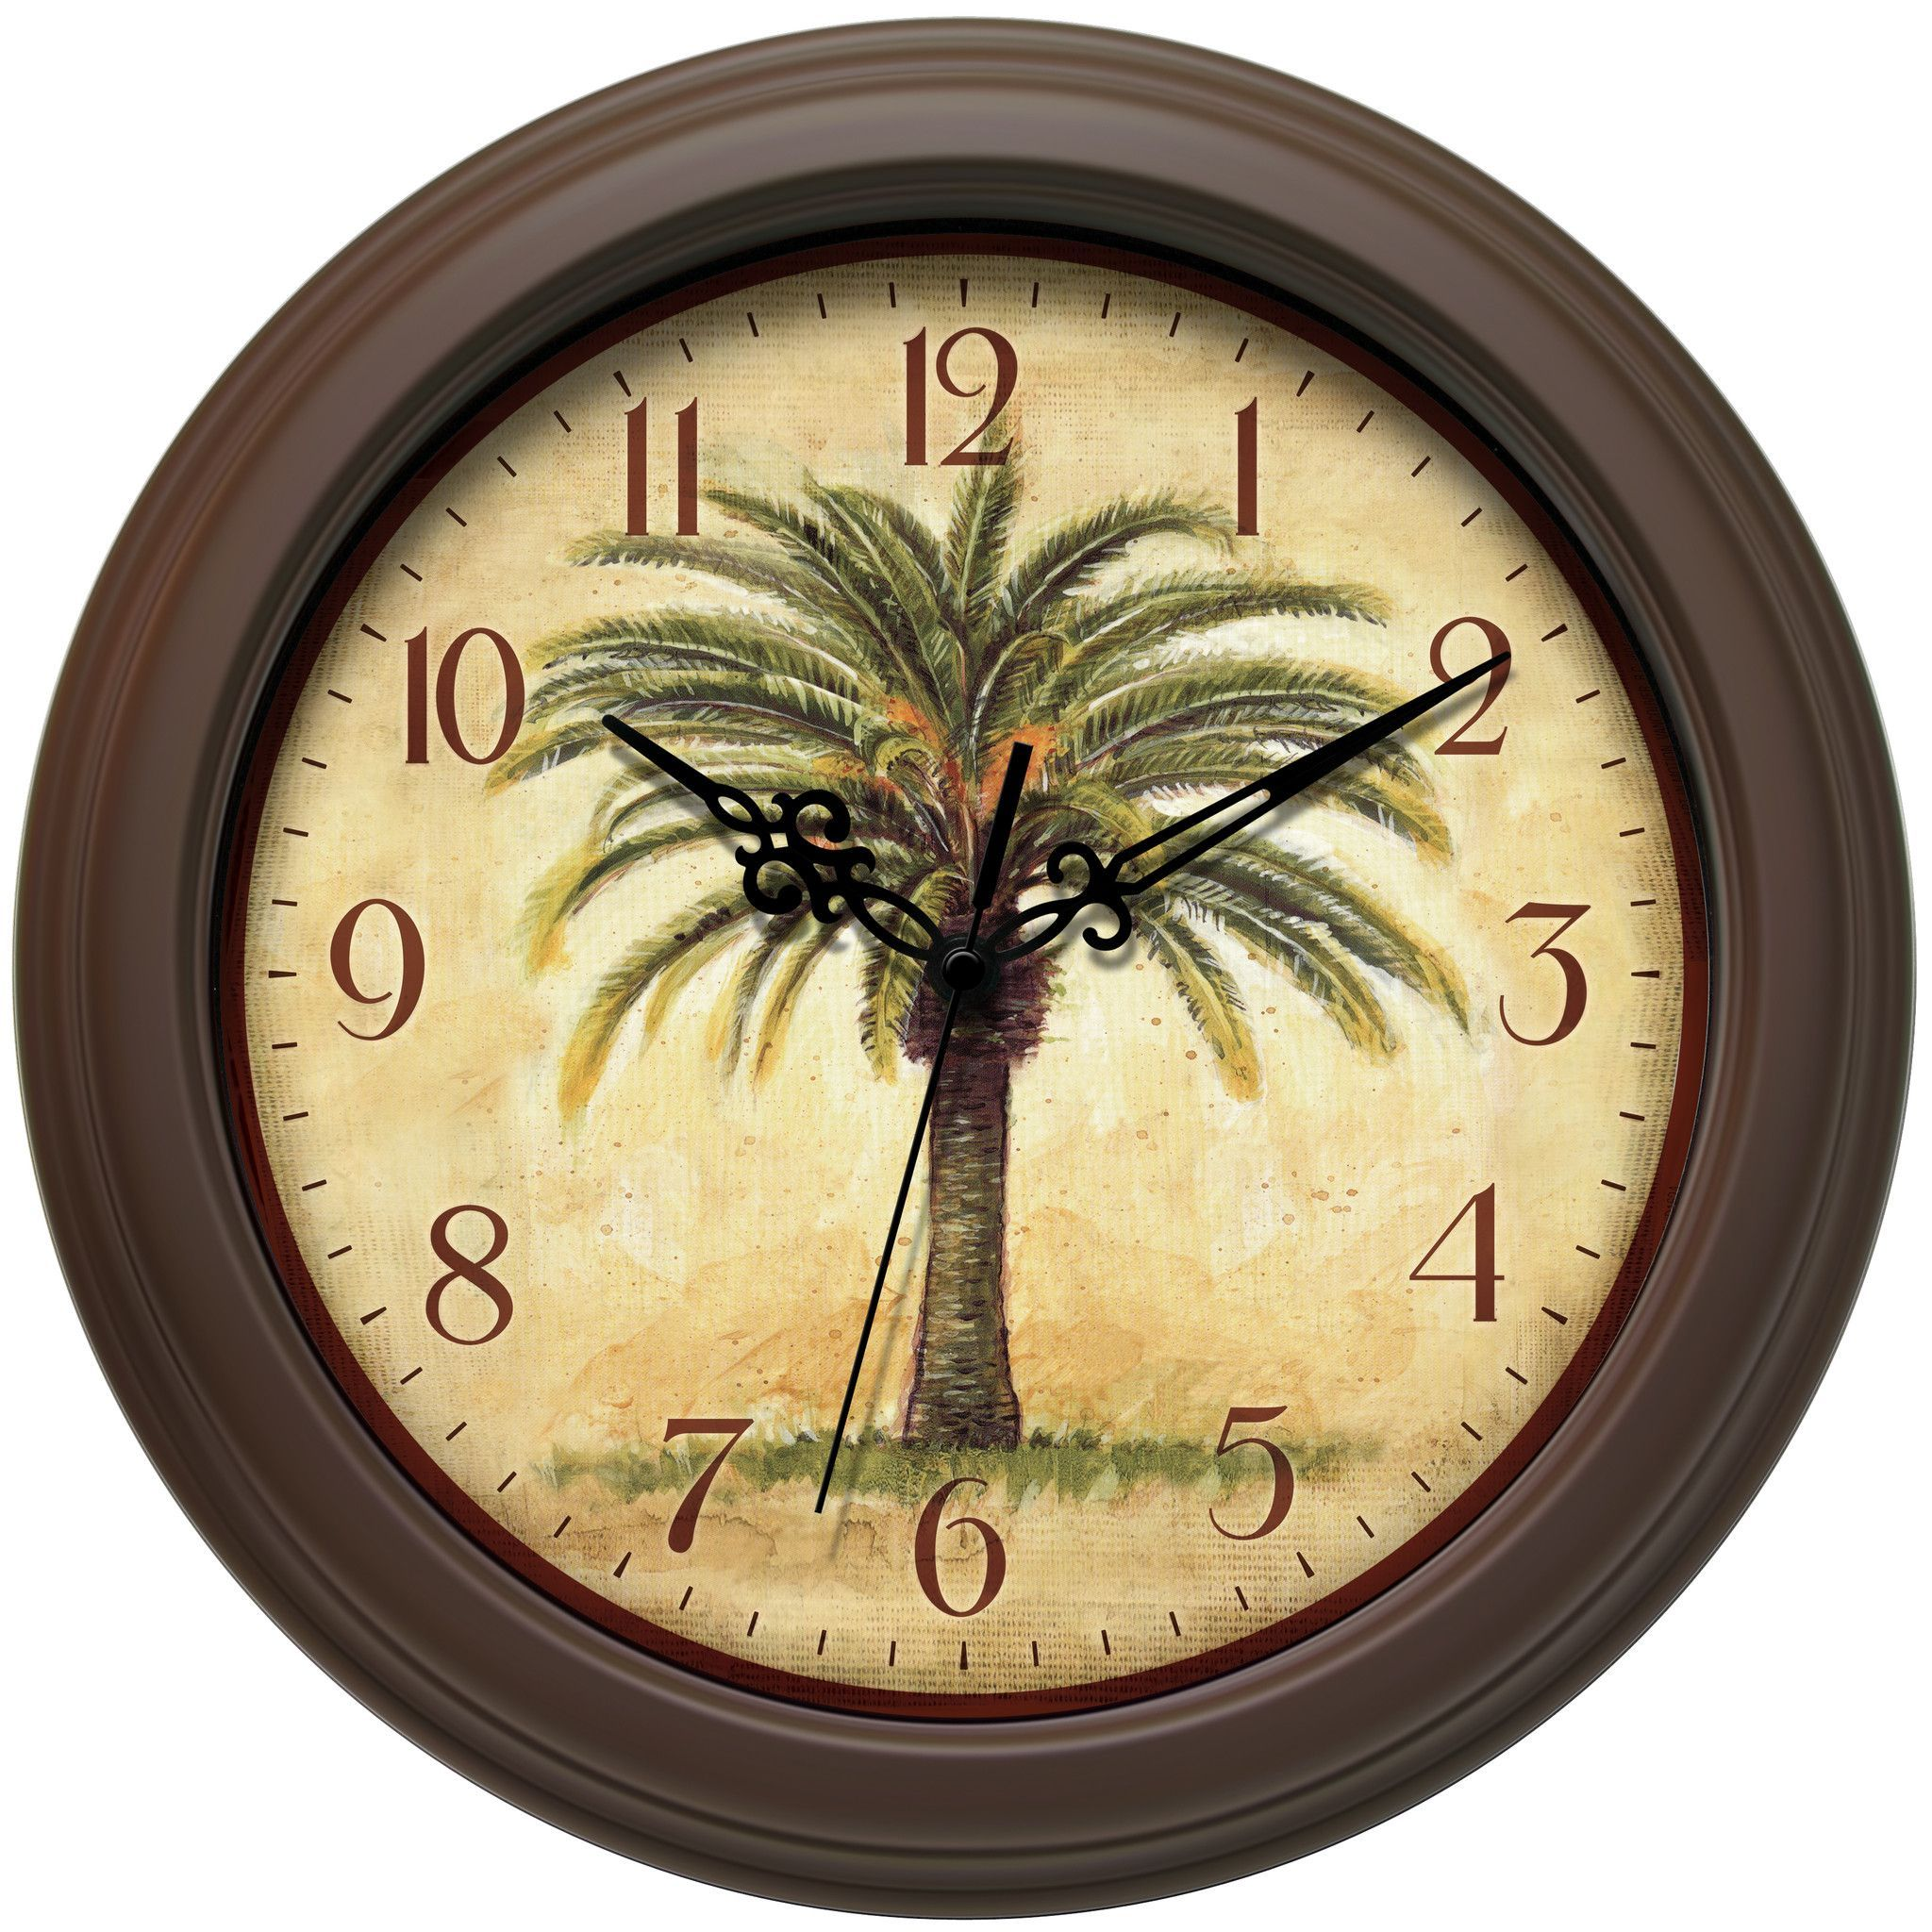 Infinity Instruments The Cabana Wall Clock 12884BR-2908 | Products ...